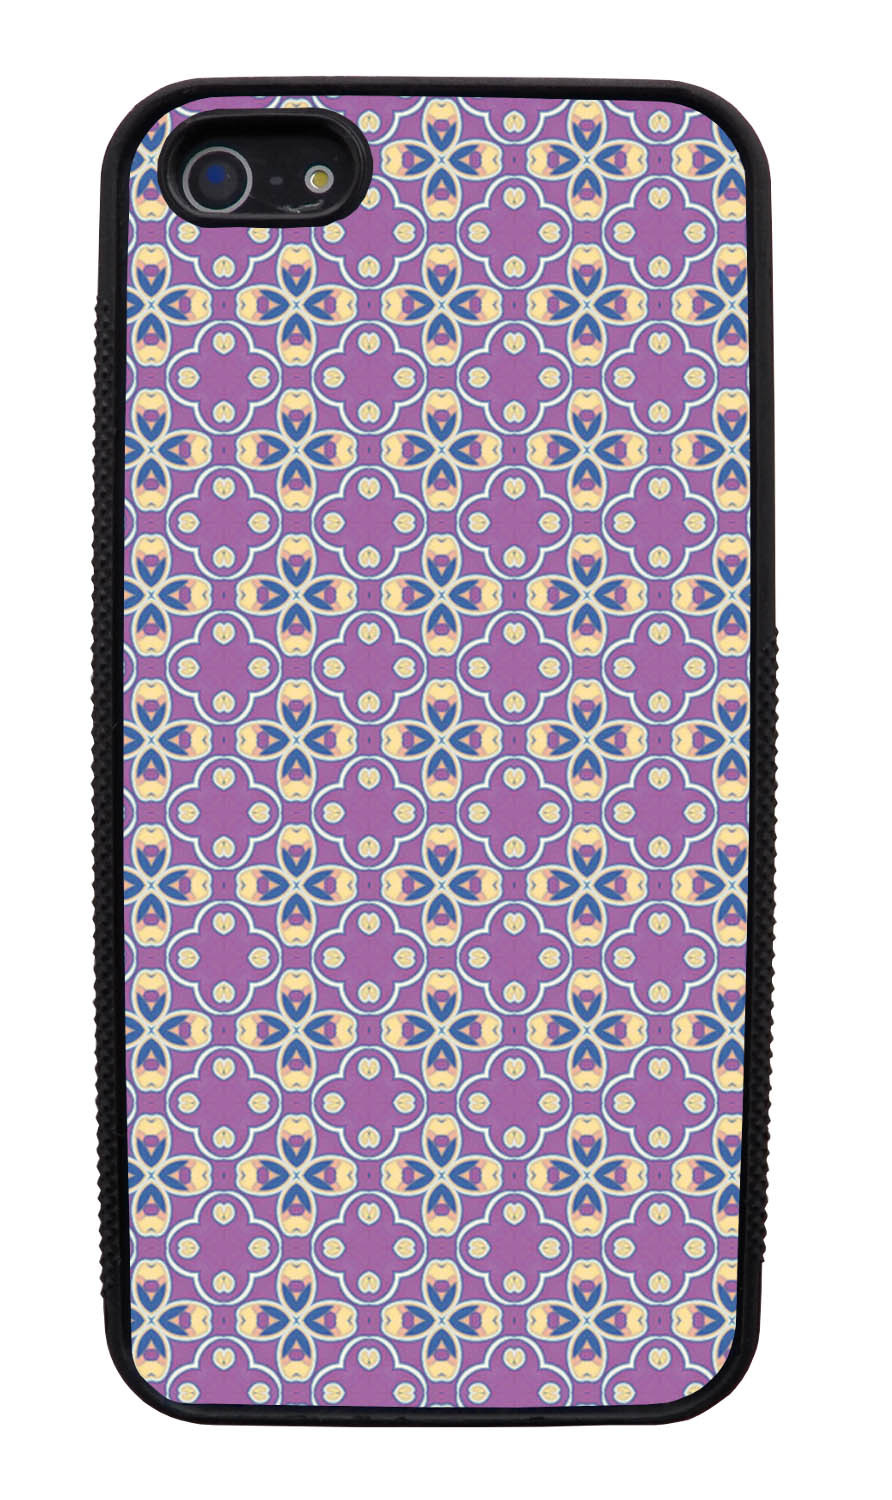 Apple iPhone 5 / 5S Abstract Case - Purple and Yellow Tip - Flower Petal Like - Black Slim Rubber Case